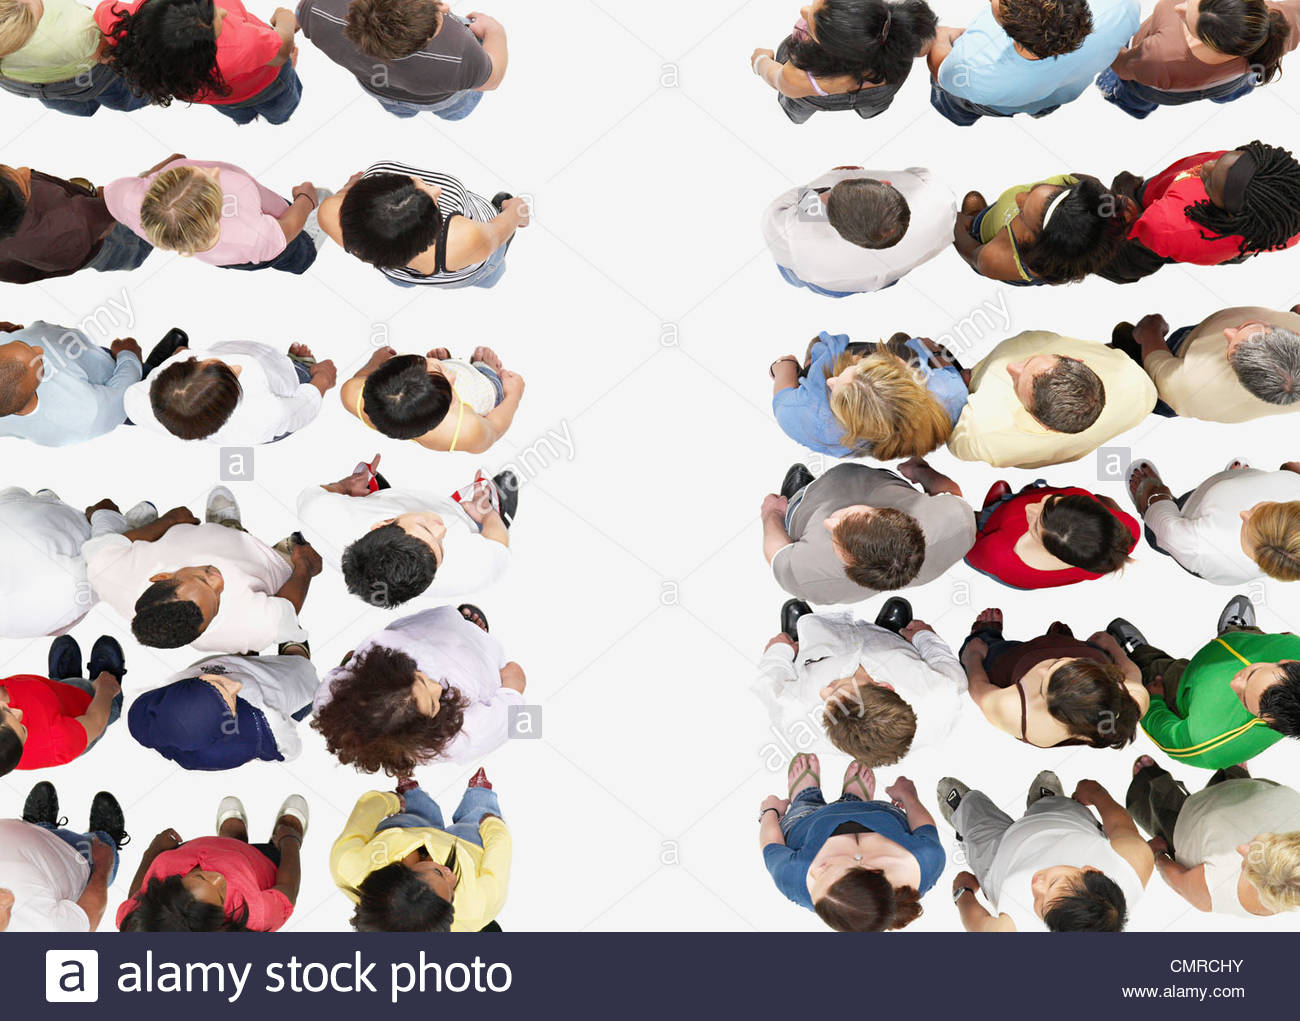 A crowd divided - Stock Image